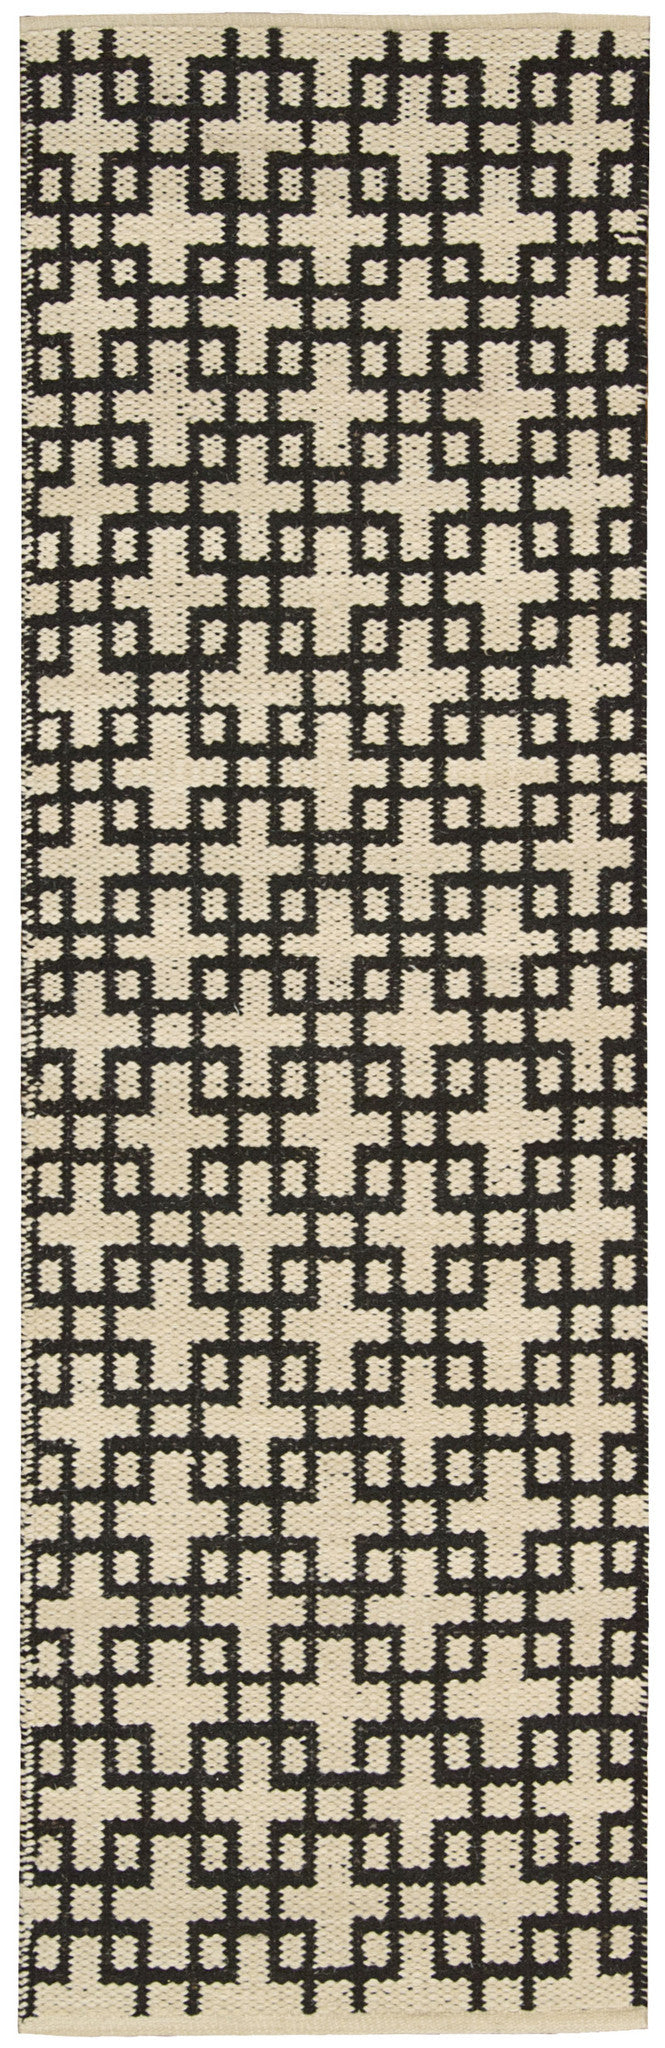 Barclay Butera Maze Midnight Area Rug By Nourison MAZ01 MID (Runner) | BOGO USA